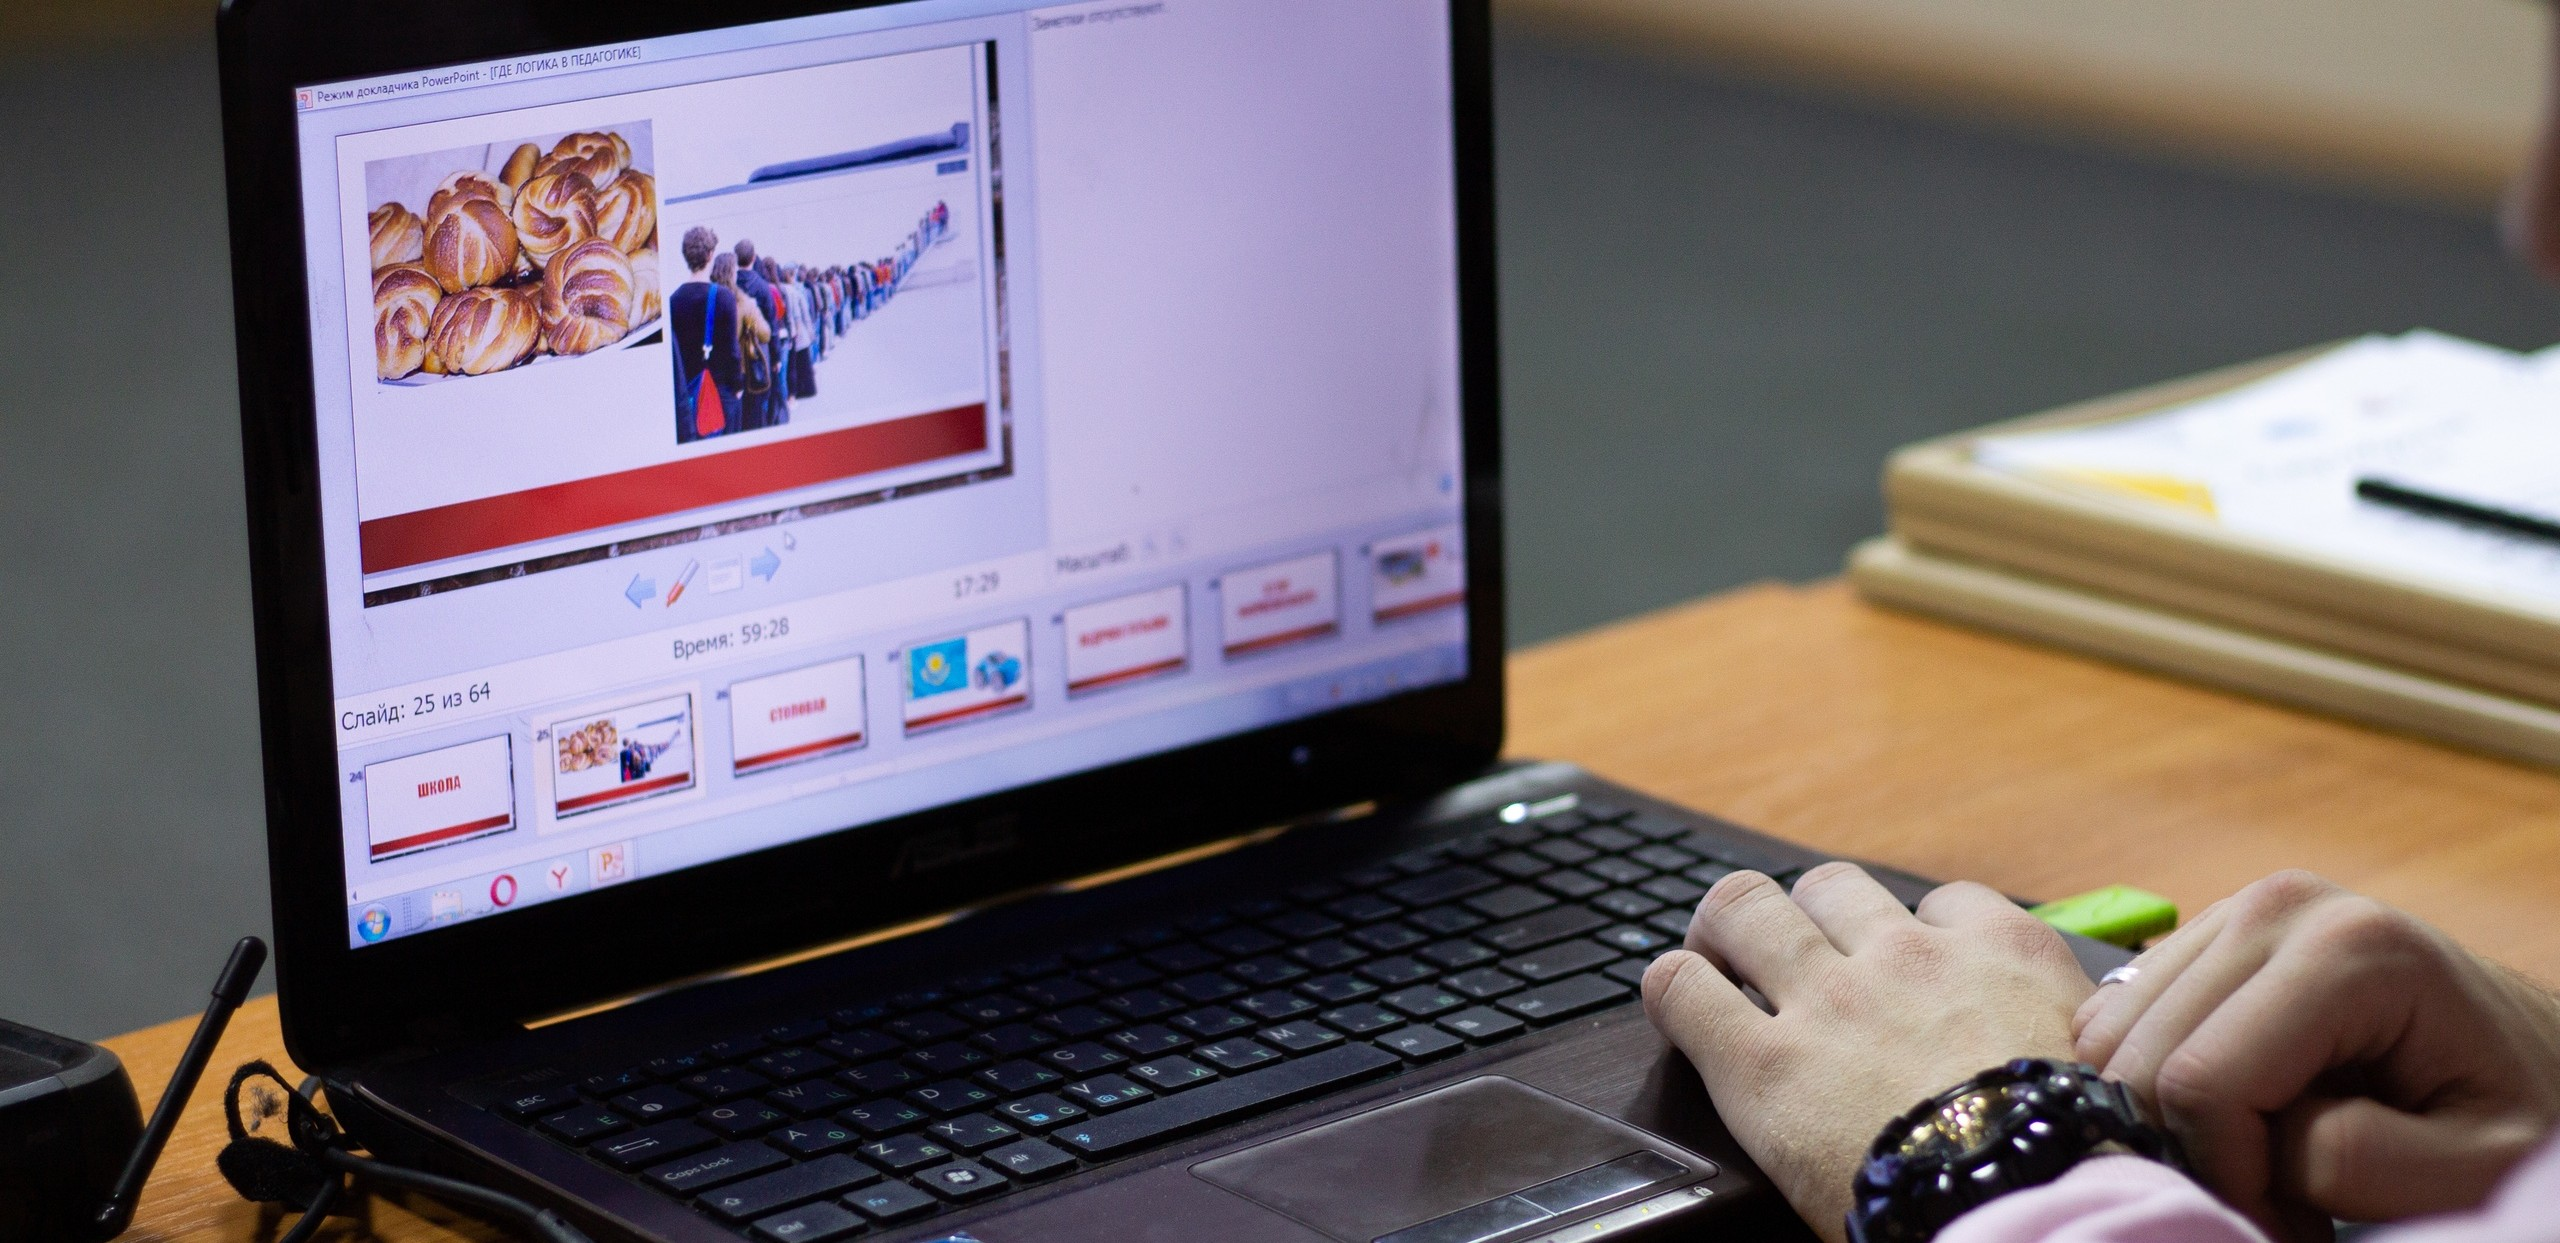 TSPU HAS TEMPORARILY SWITCHED TO DISTANCE LEARNING